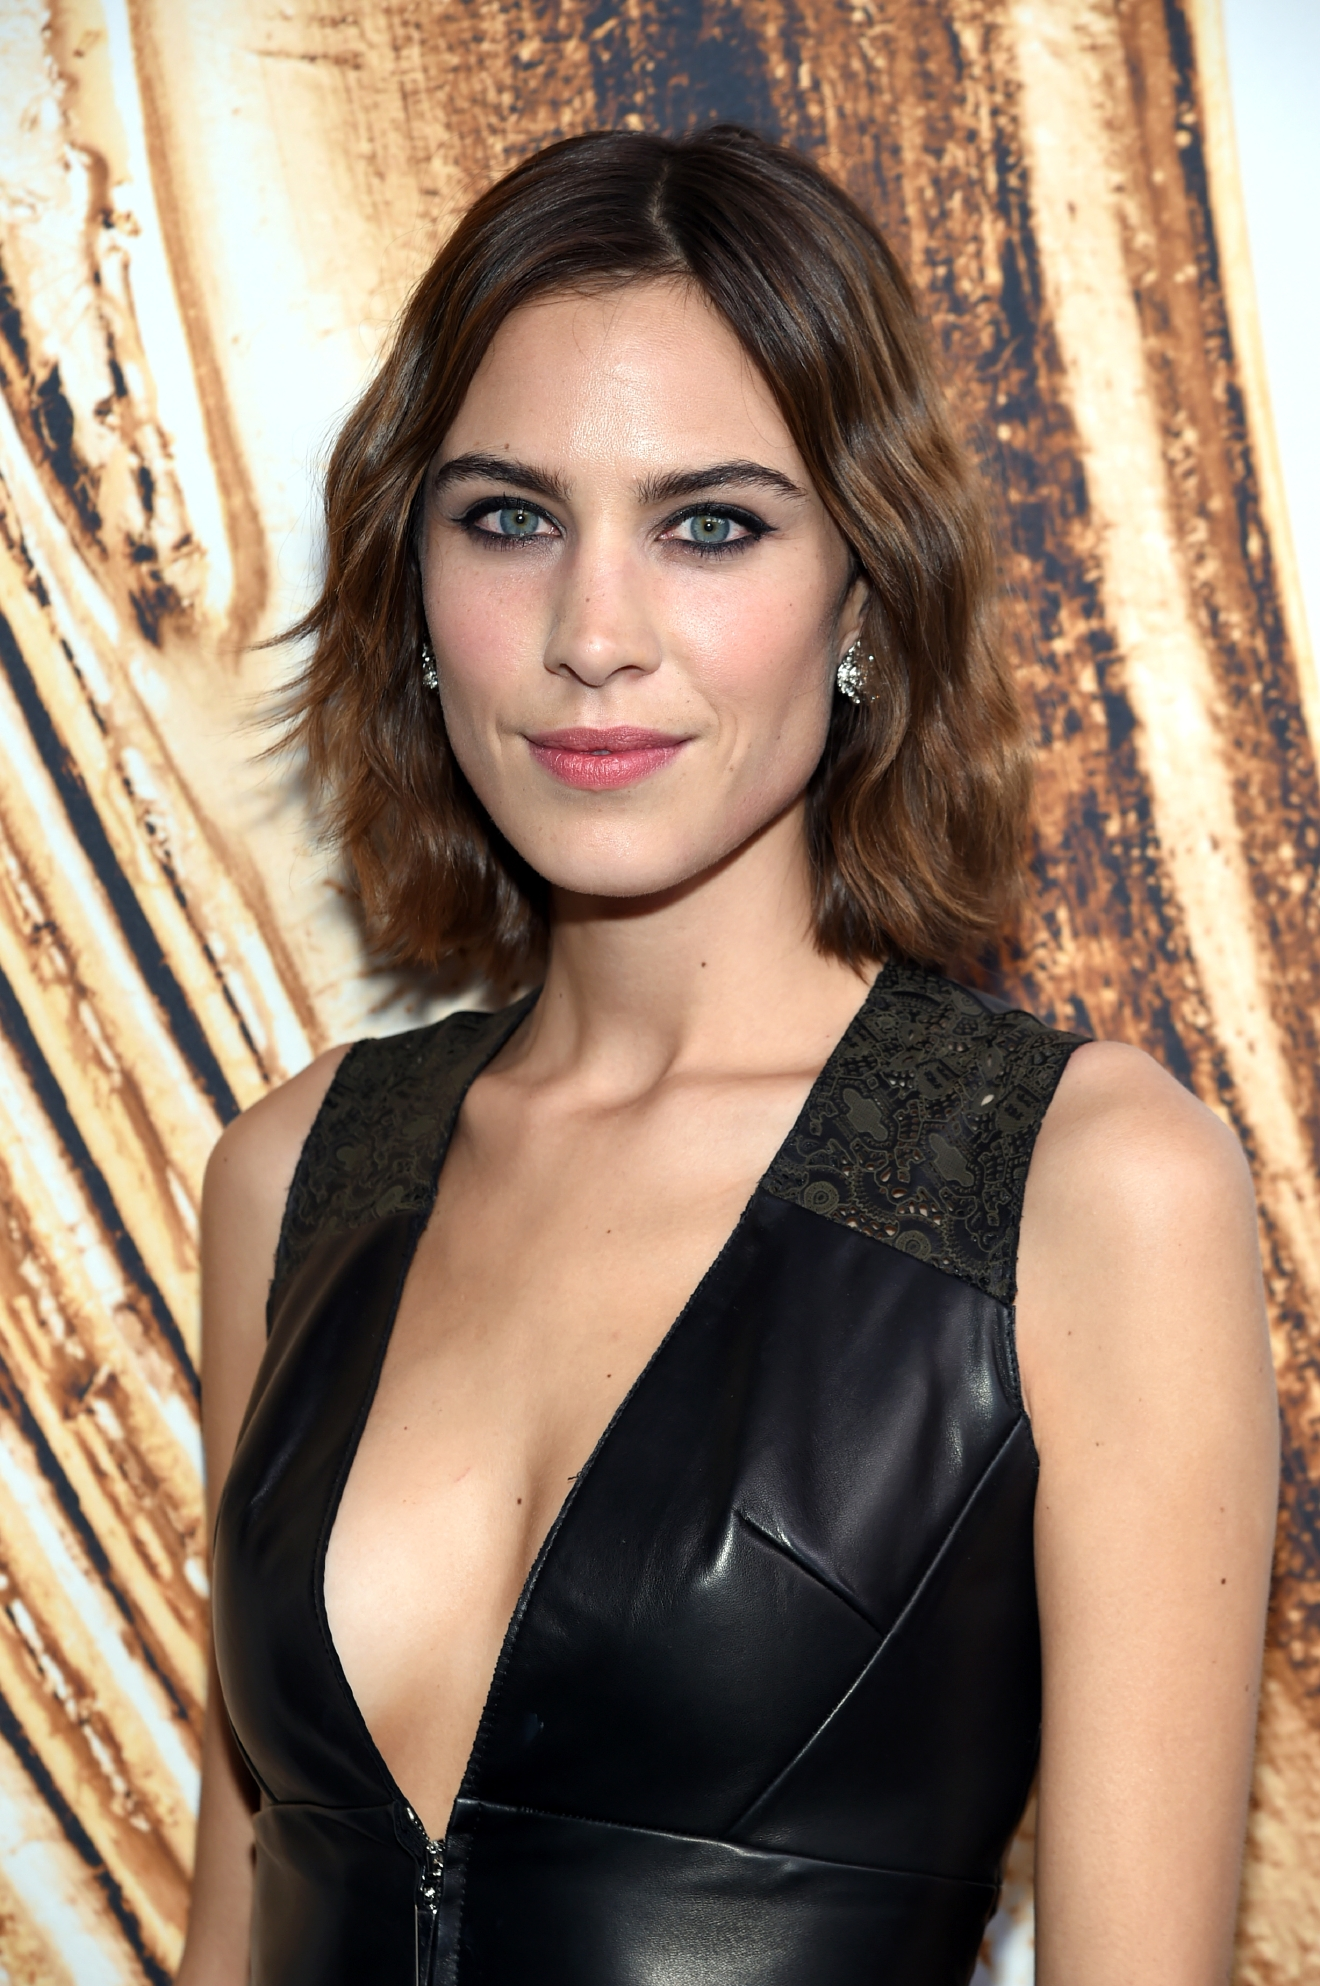 Alexa Chung poses at the CFDA Fashion Awards at the Hammerstein Ballroom on Monday, June 6, 2016, in New York. (Photo by Evan Agostini/Invision/AP)